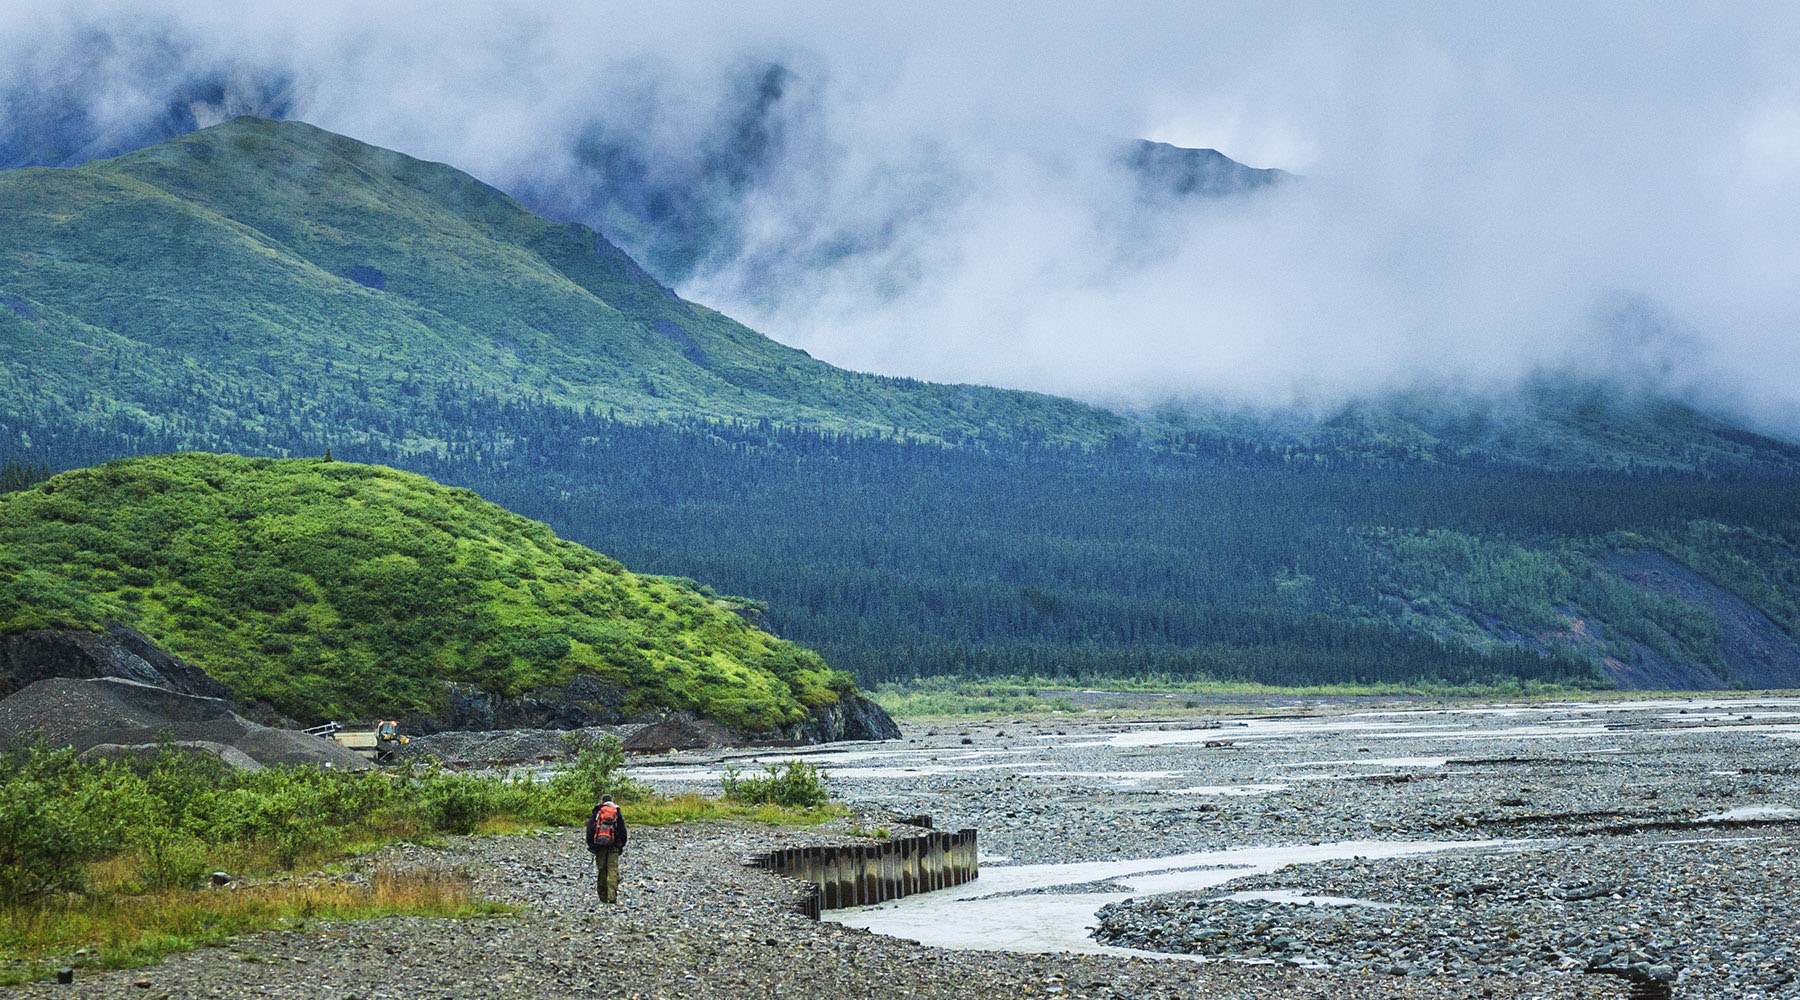 A photo of a lone backpacker on a trail in Alaska.